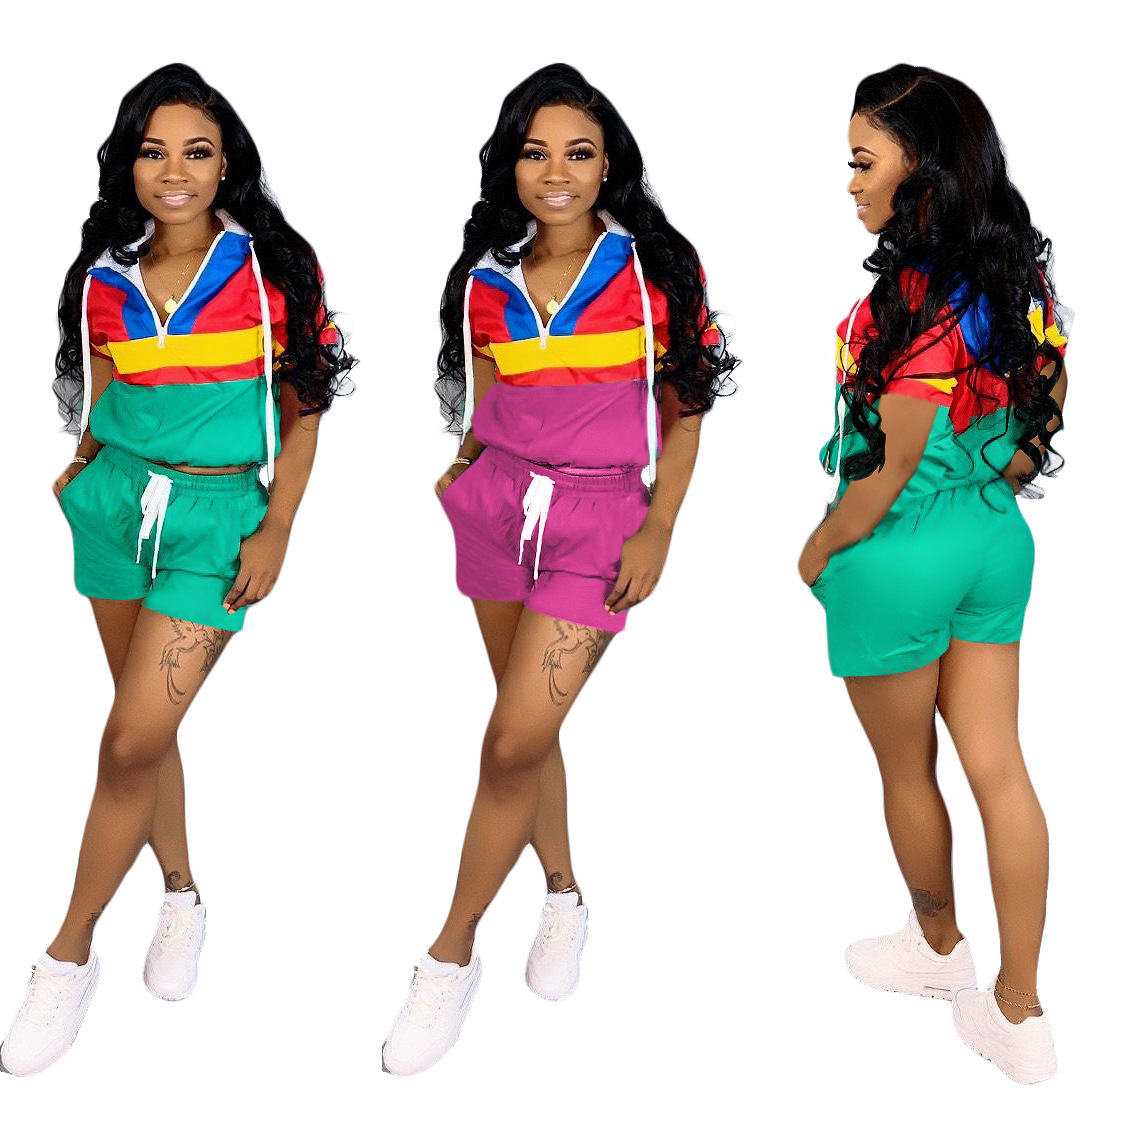 S3586 Cross Border Hot Selling Wholesale Europe And America Hooded Casual Sports Contrast Color Joint Short Sleeve + Shorts WOME